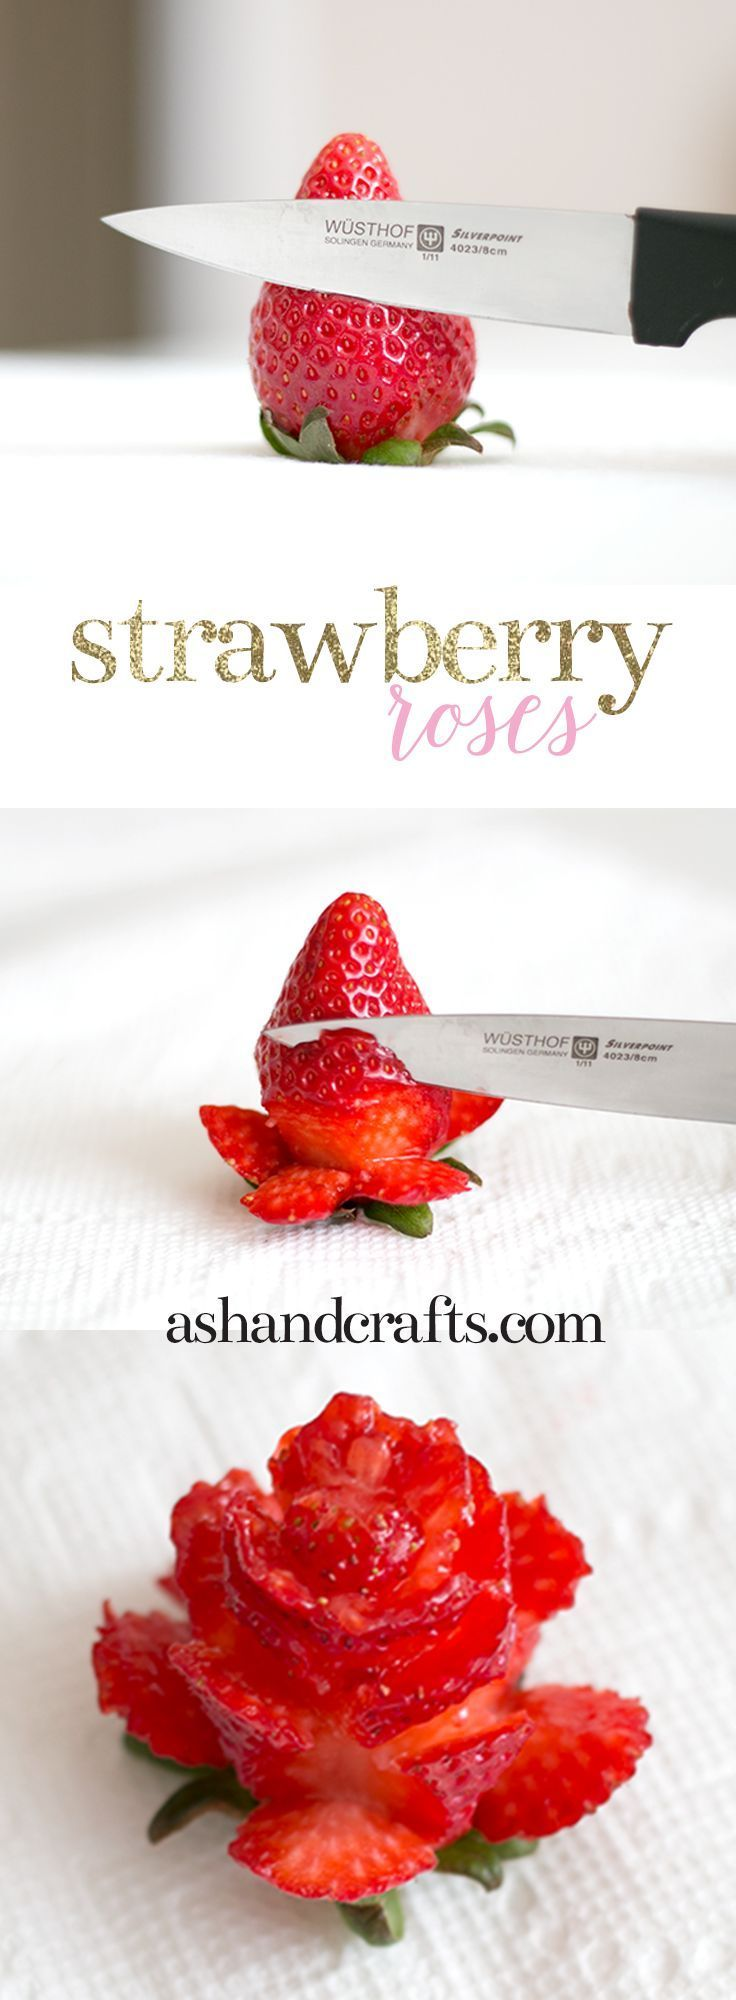 Learn how to cut strawberries into roses, perfect for your Valentine's treats!